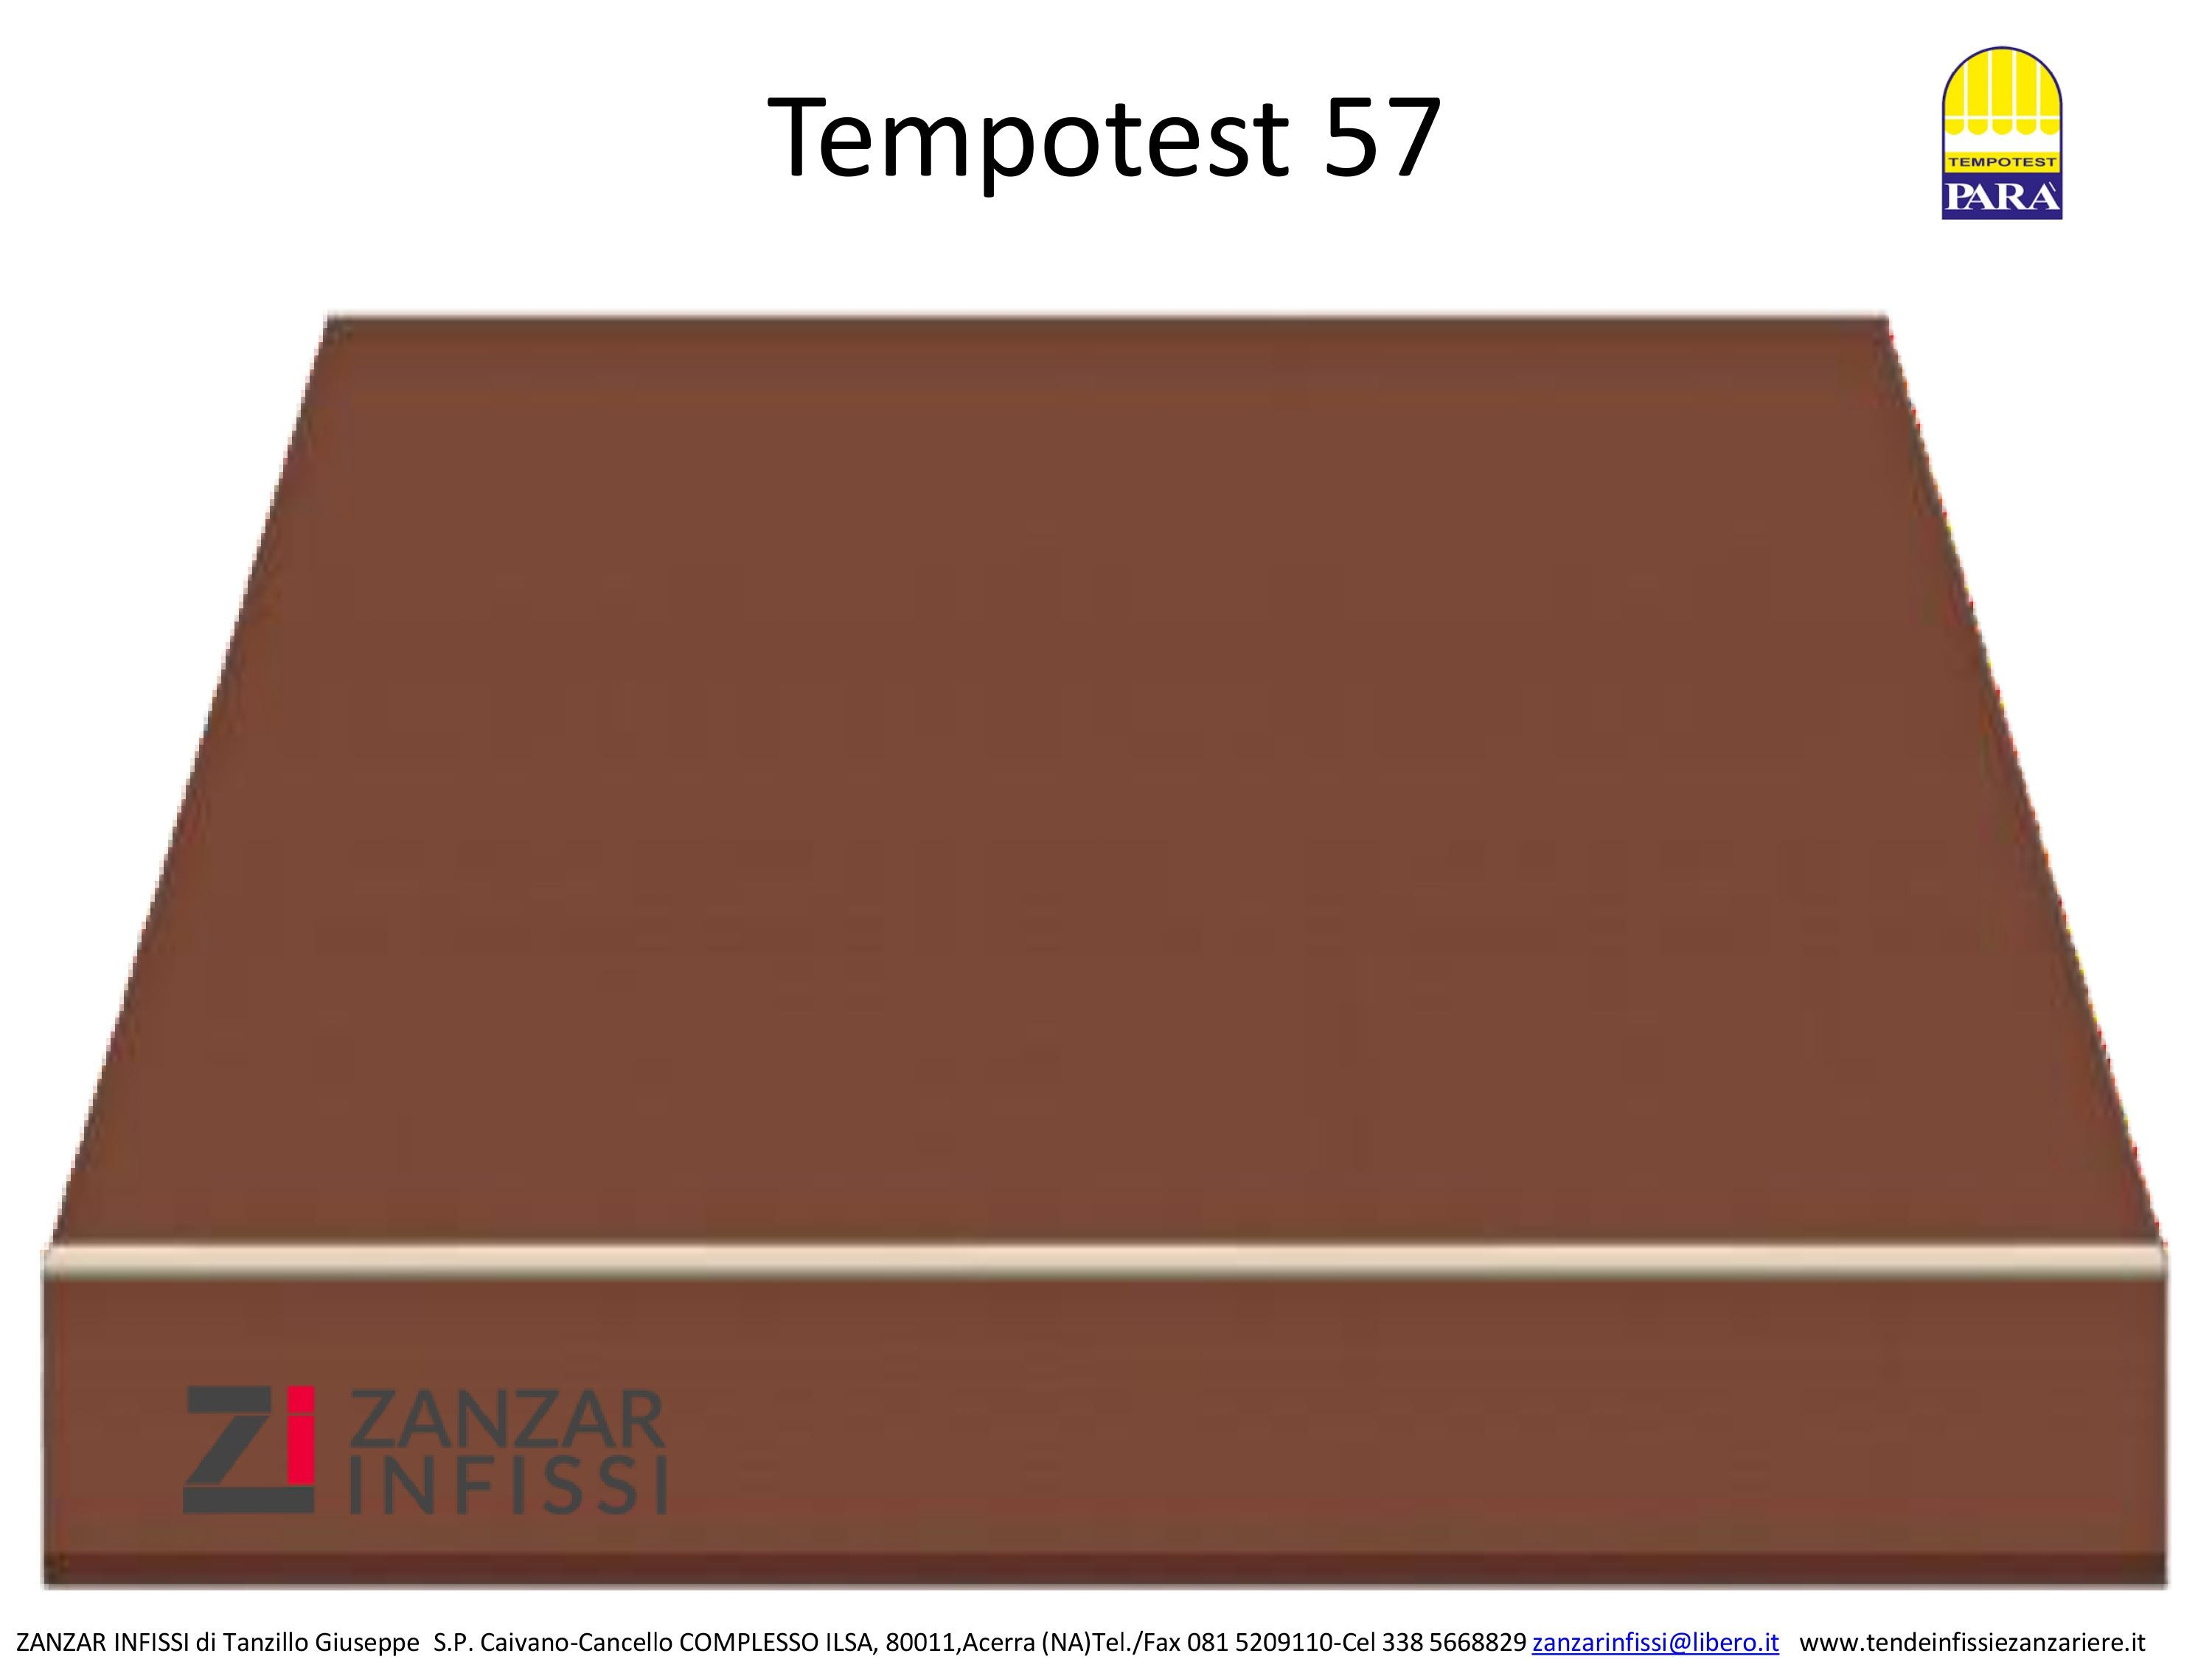 Tempotest 57